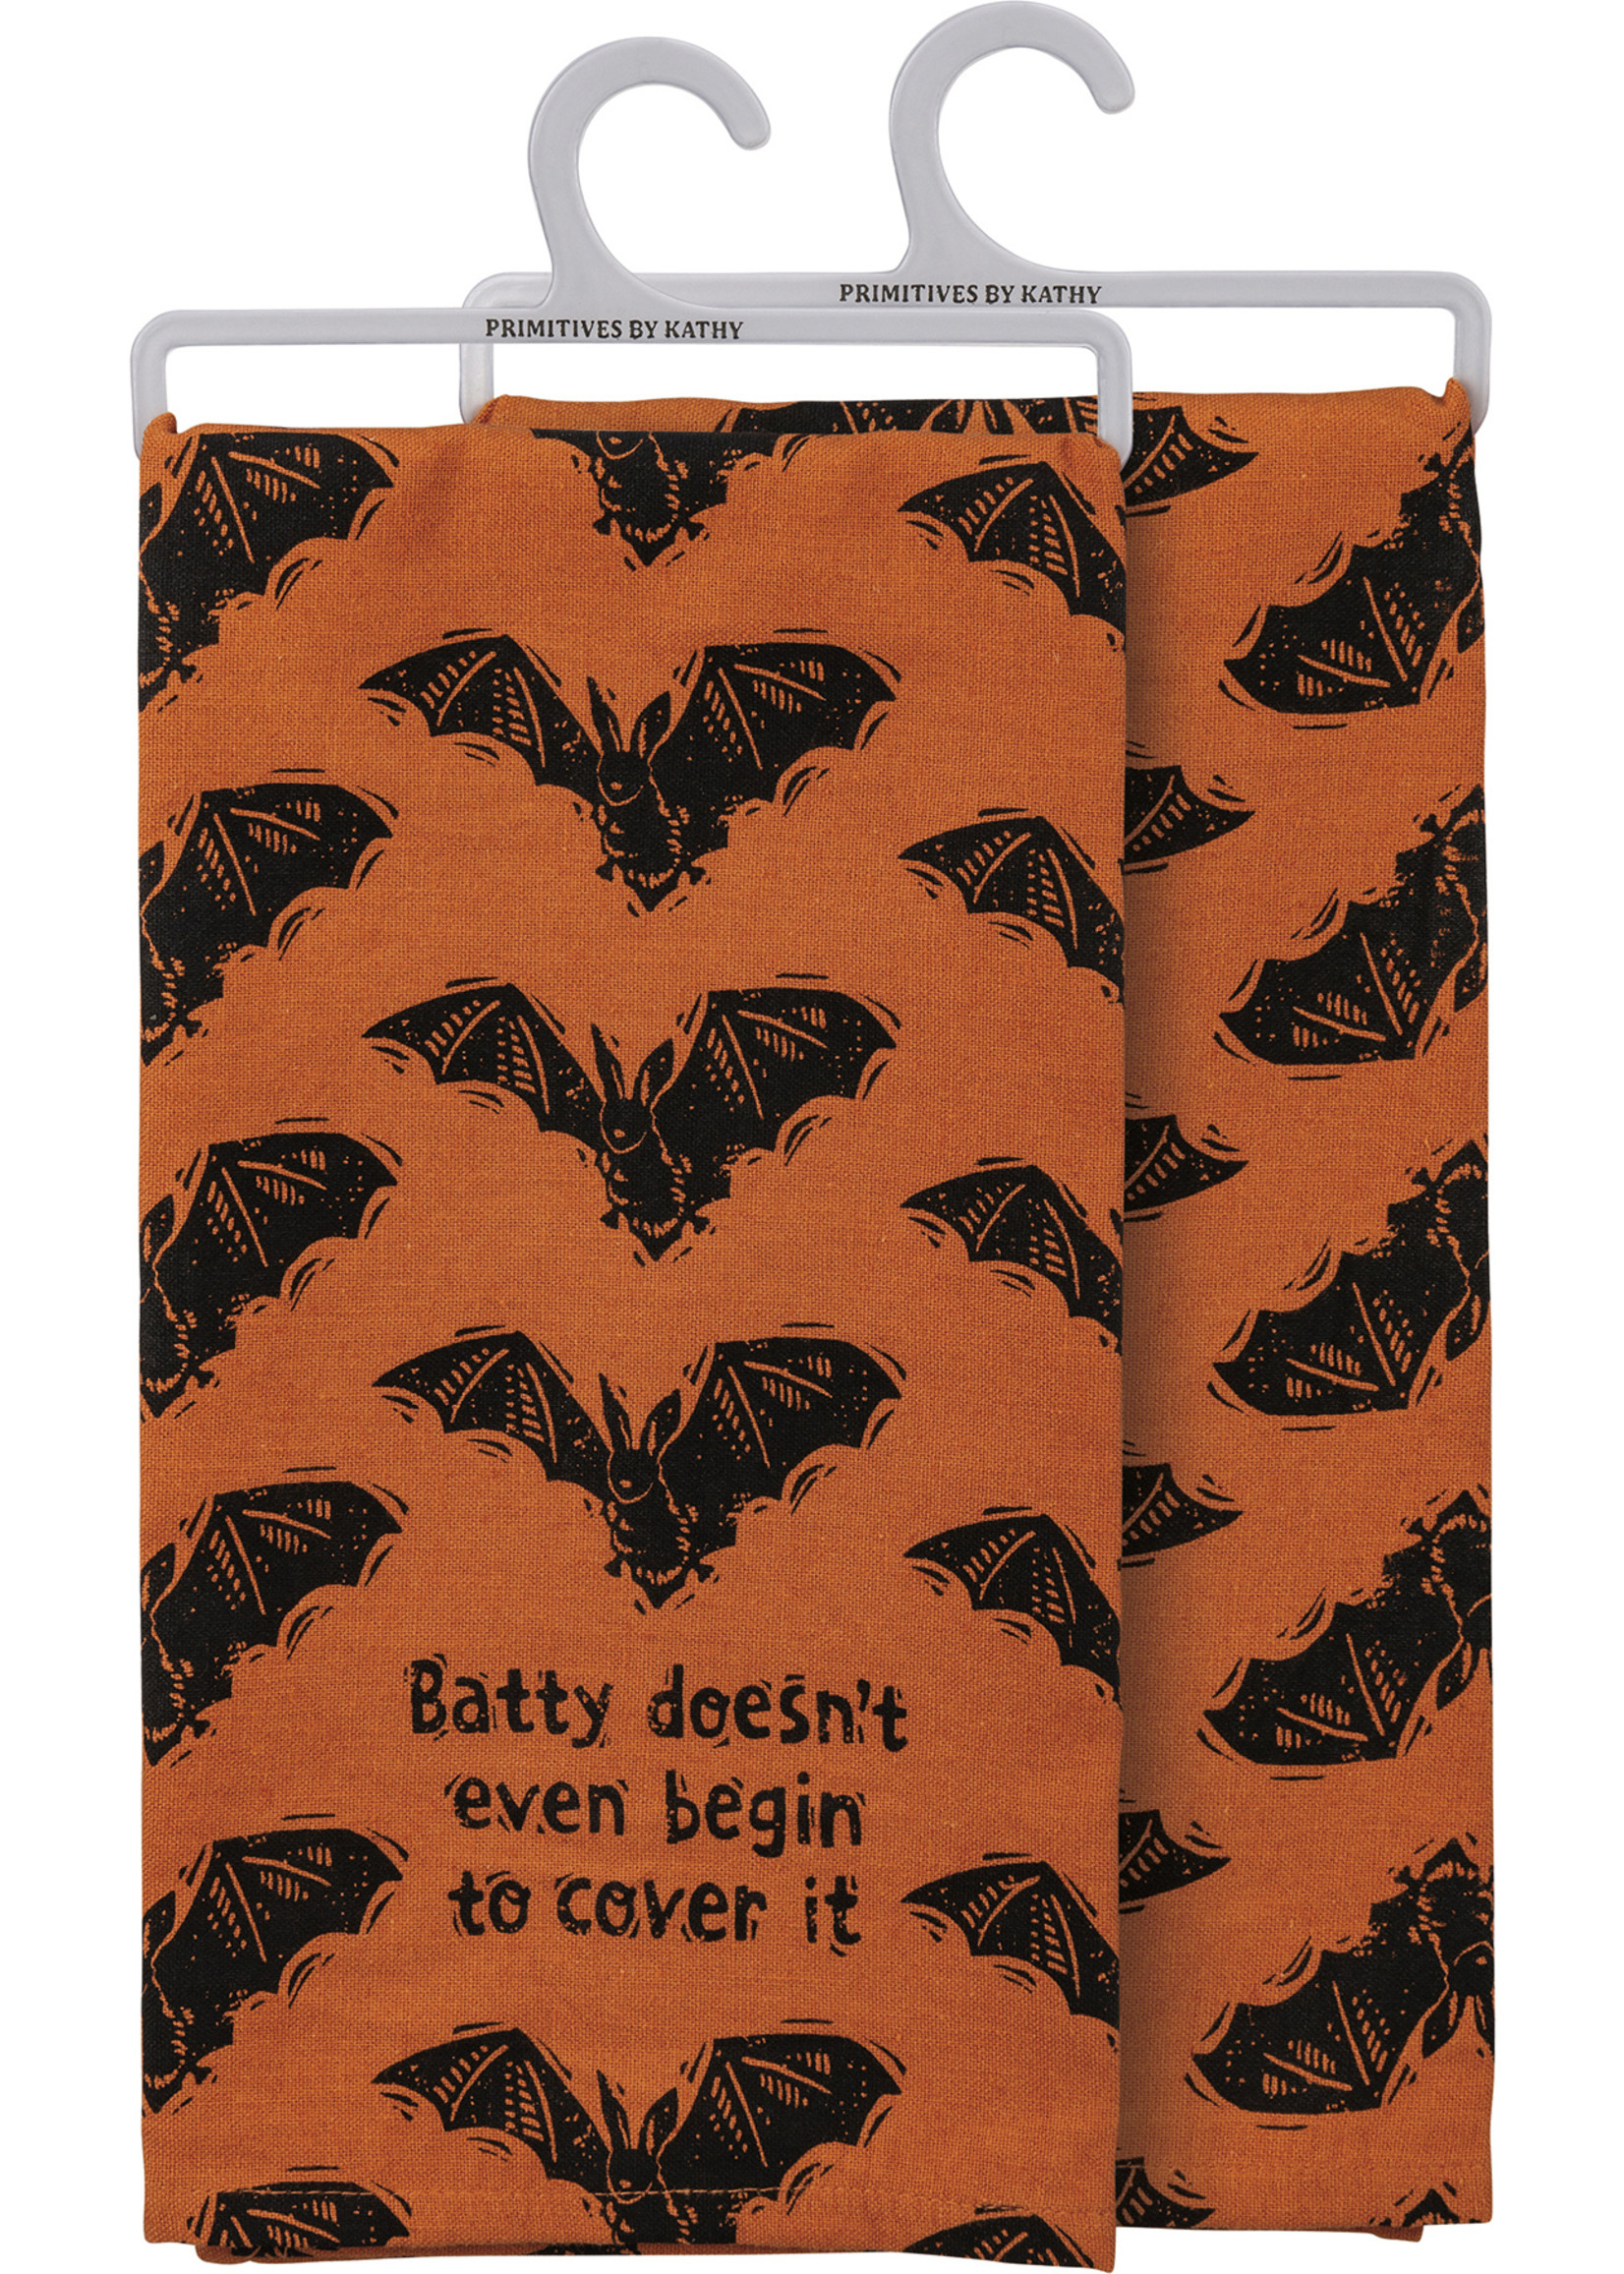 Primitives By Kathy Dish Towel - Batty Doesn't Even Begin To Cover It